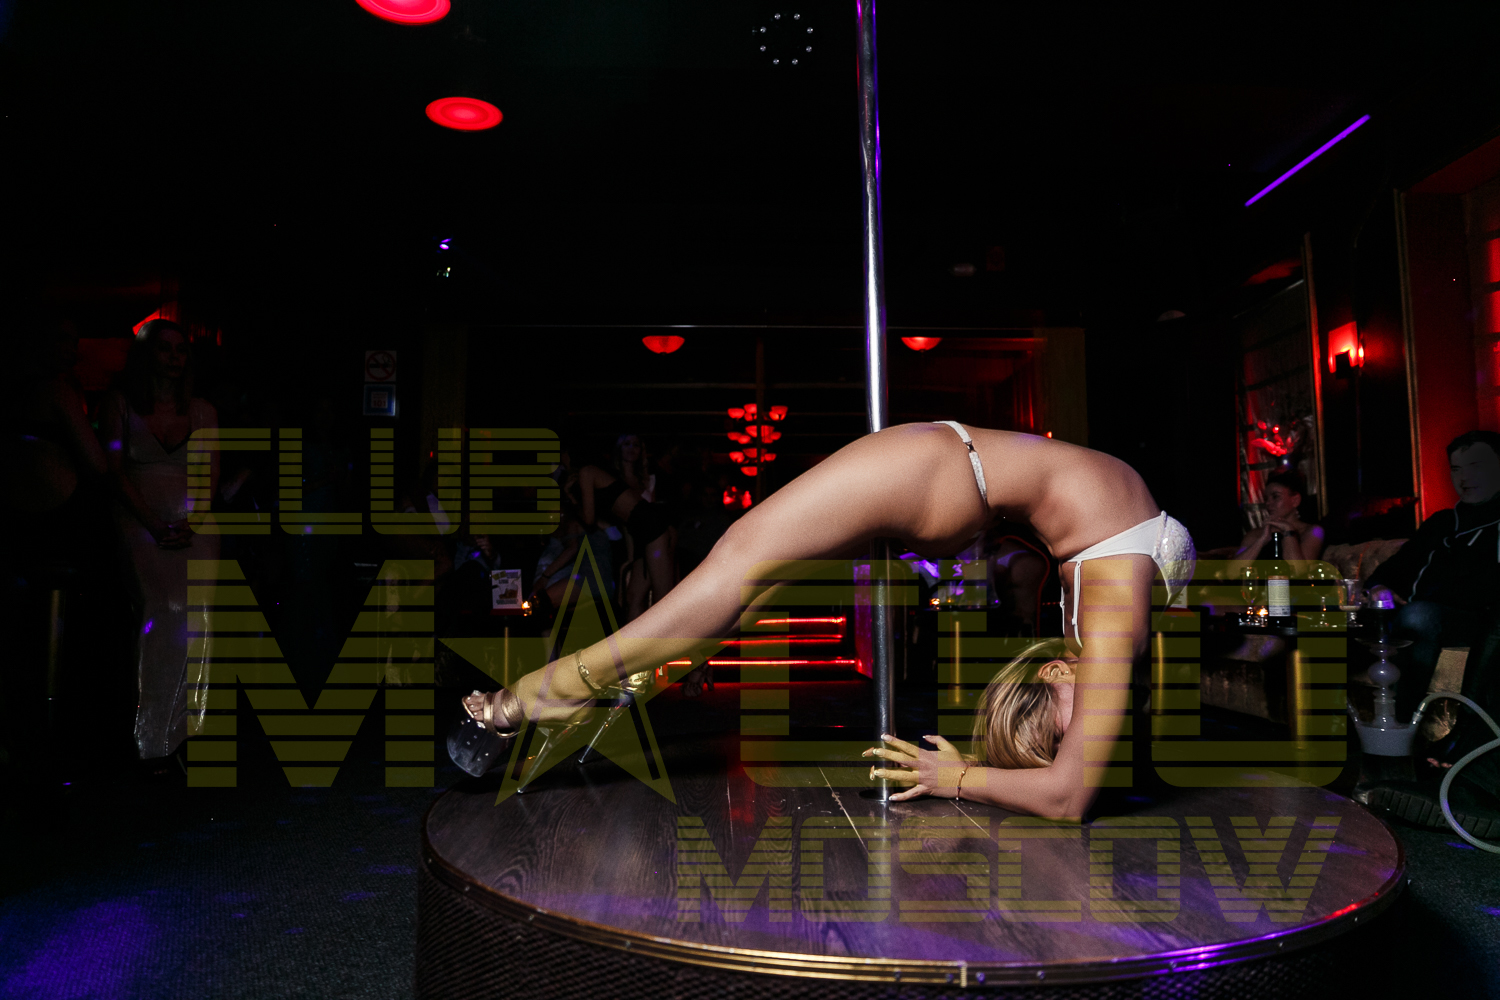 Bartending job at strip club 12